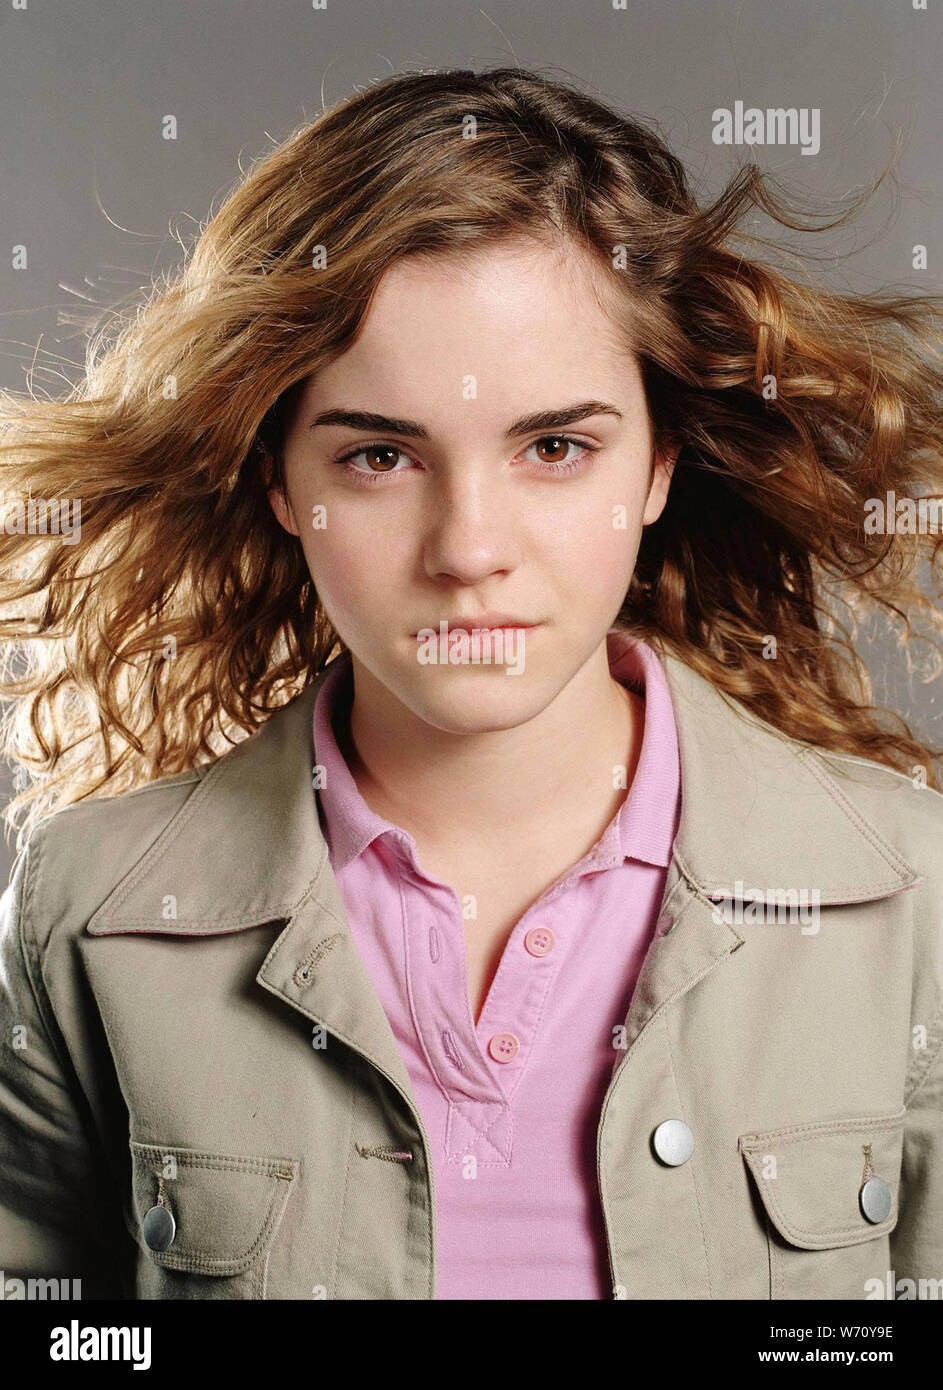 Emma Watson In Harry Potter And The Goblet Of Fire 2005 Directed By Mike Newell Credit Warner Bros Album Stock Photo Alamy